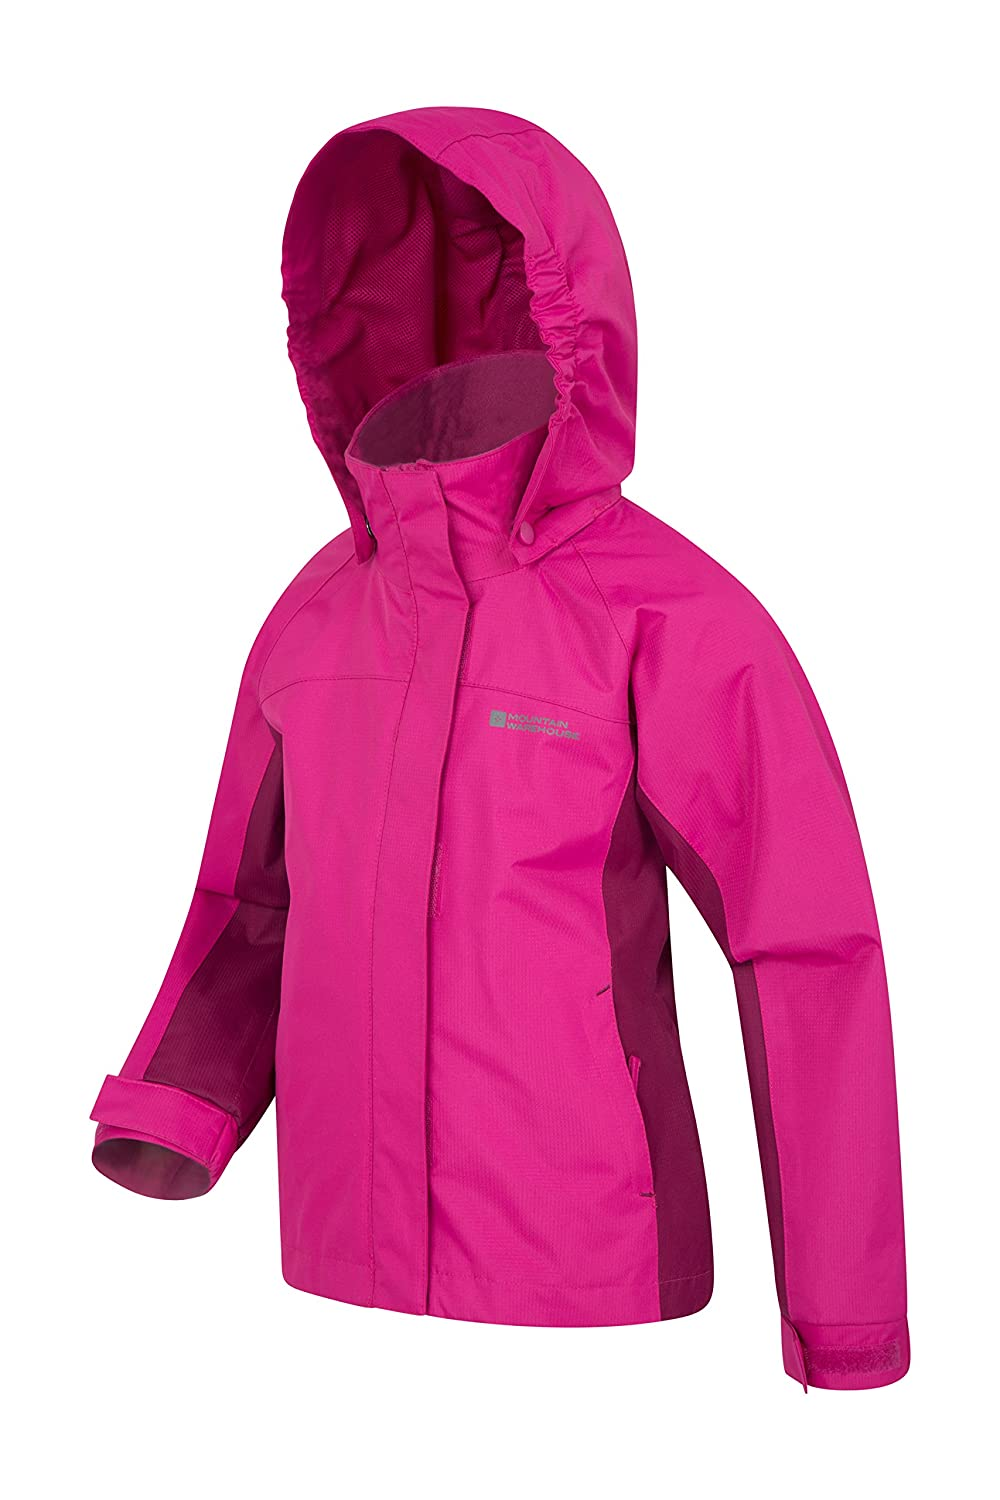 Mountain Warehouse Shelly 2 Kids Jacket with Adjustable Cuffs /& Pockets